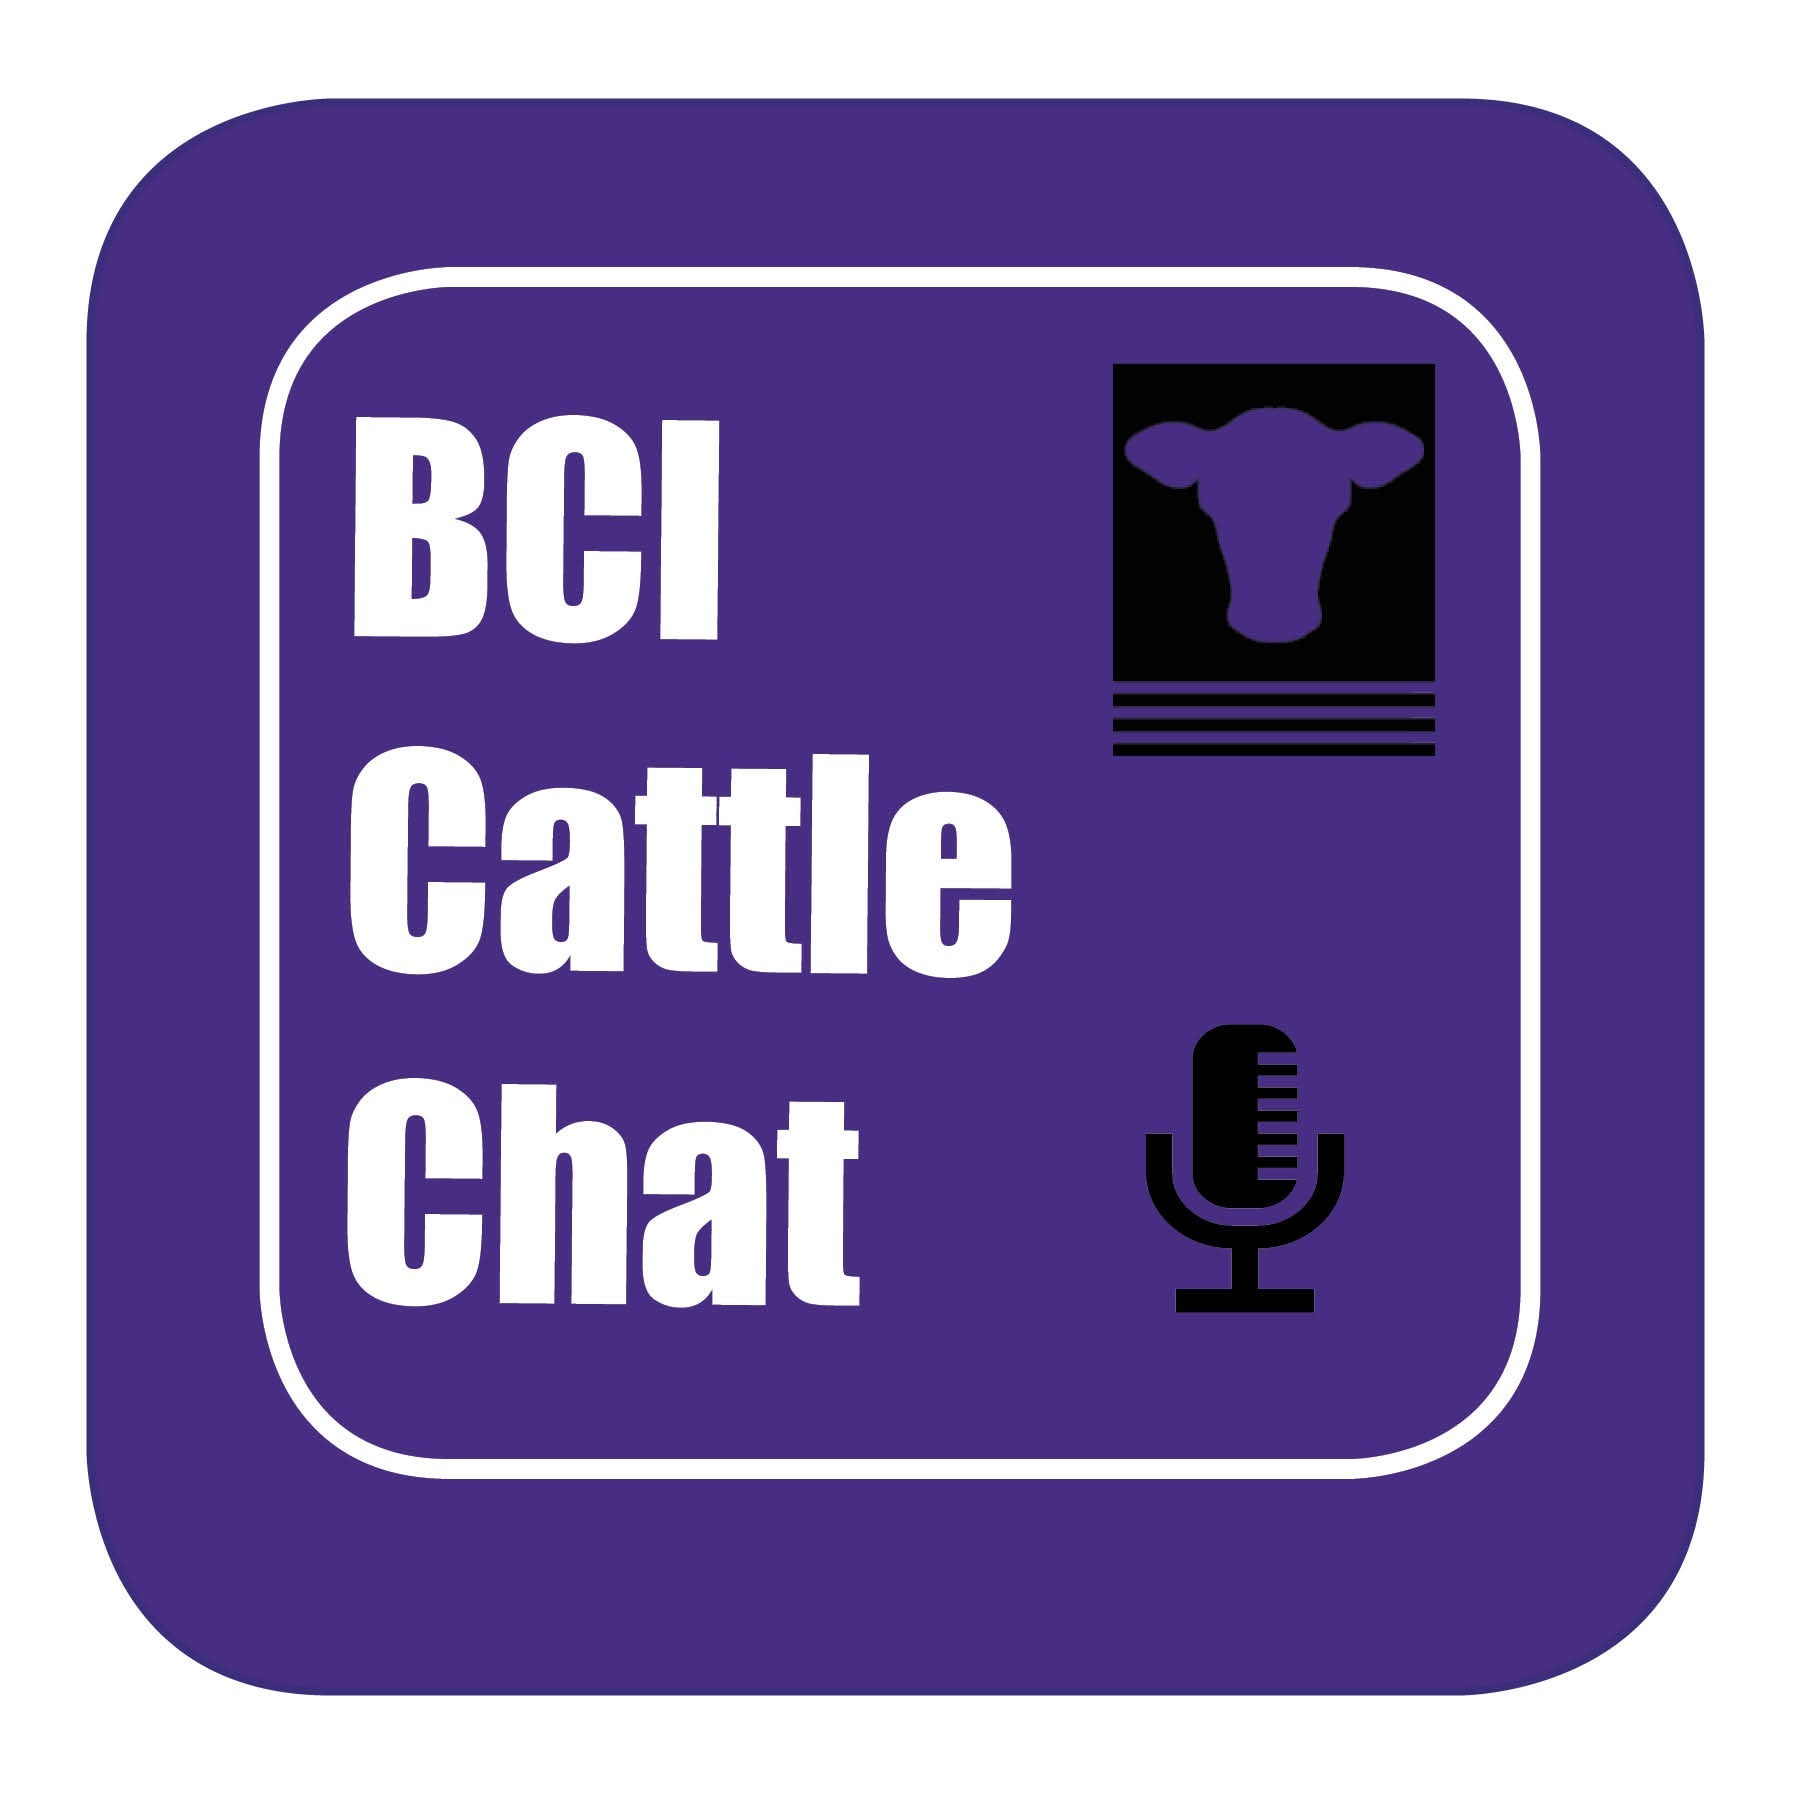 BCI Cattle Chat - Episode 56